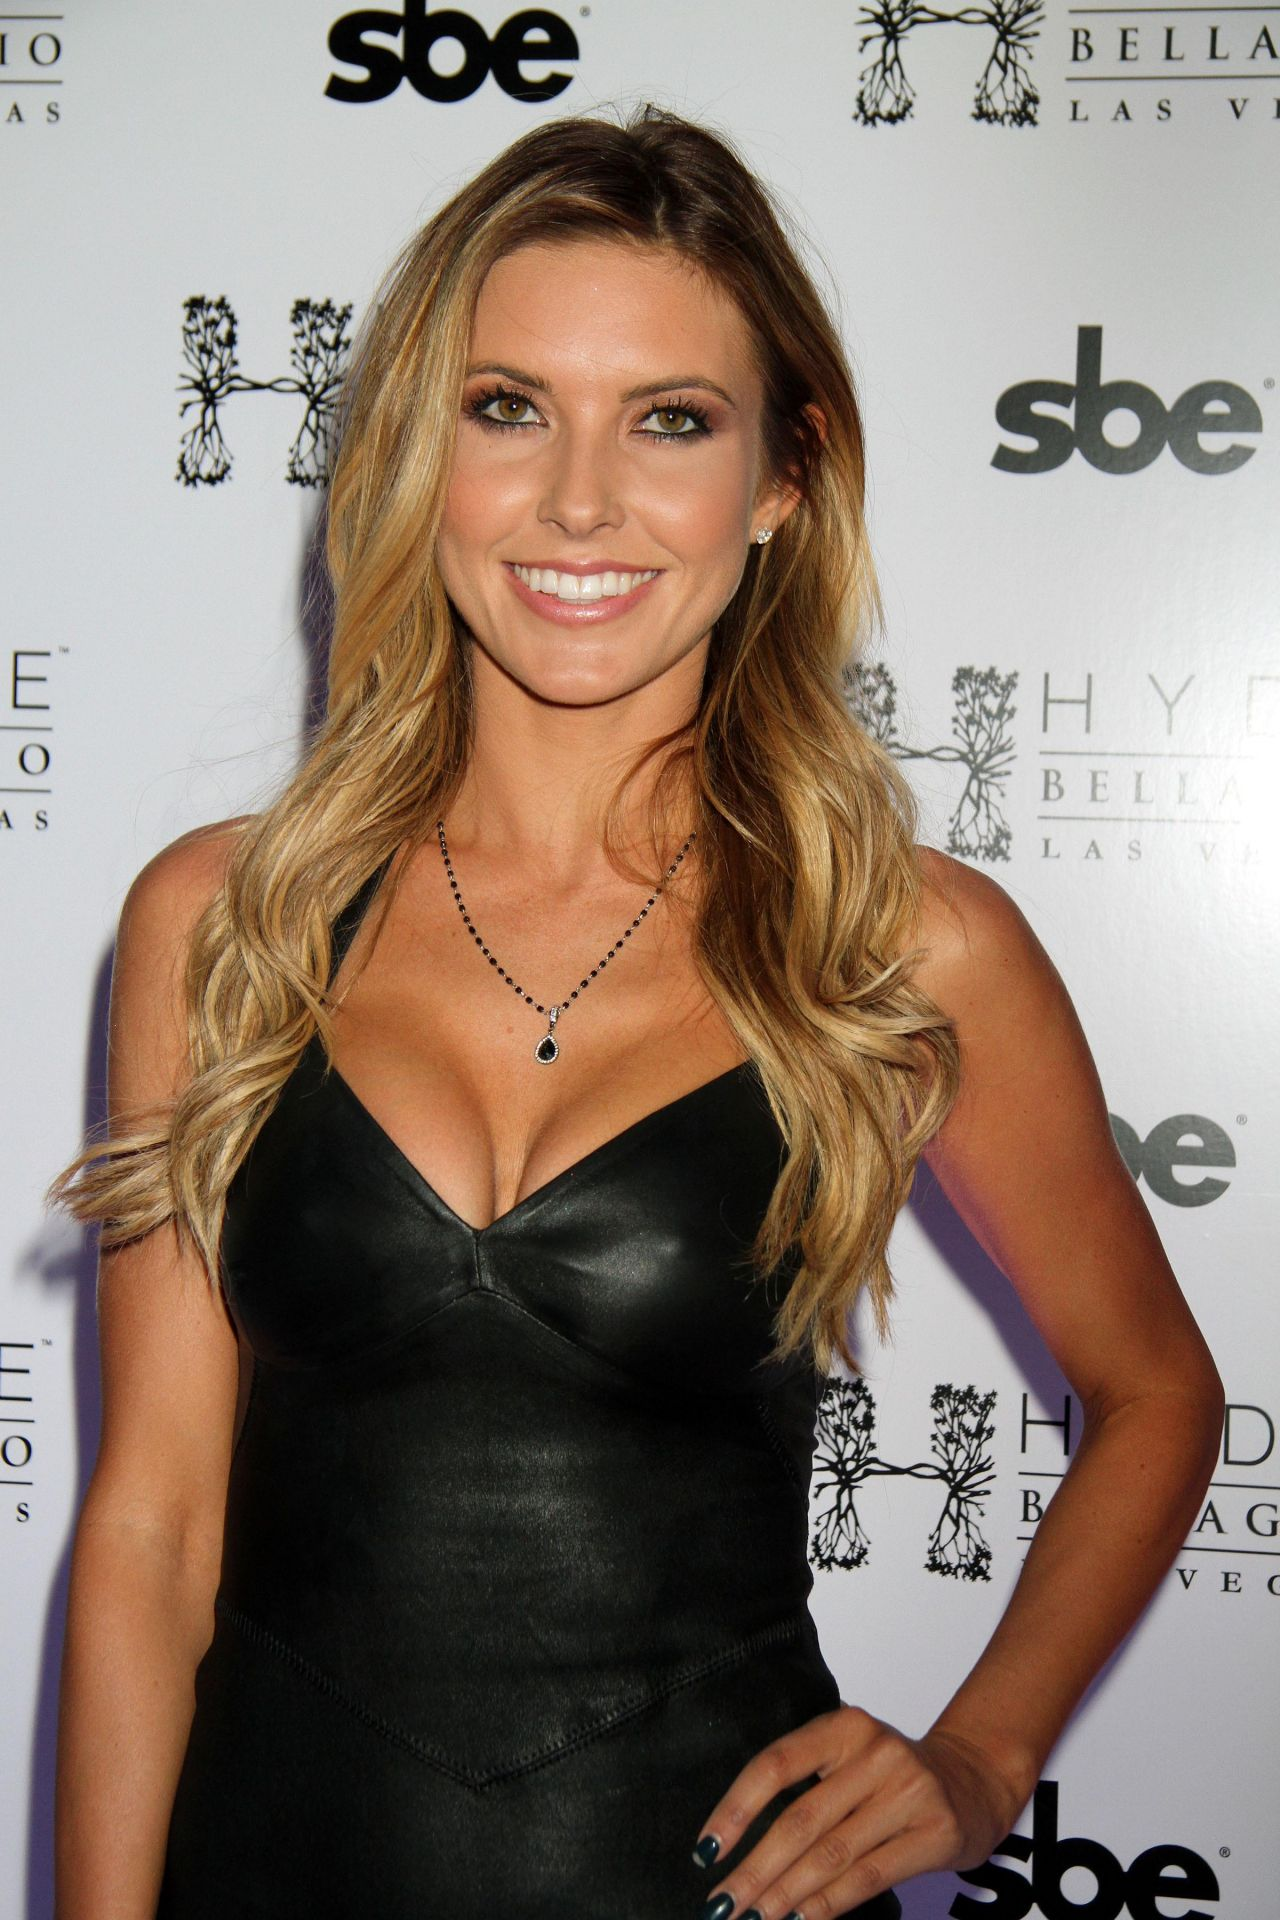 Audrina Patridge at Hyde Bellagio in Vegas - December 2013